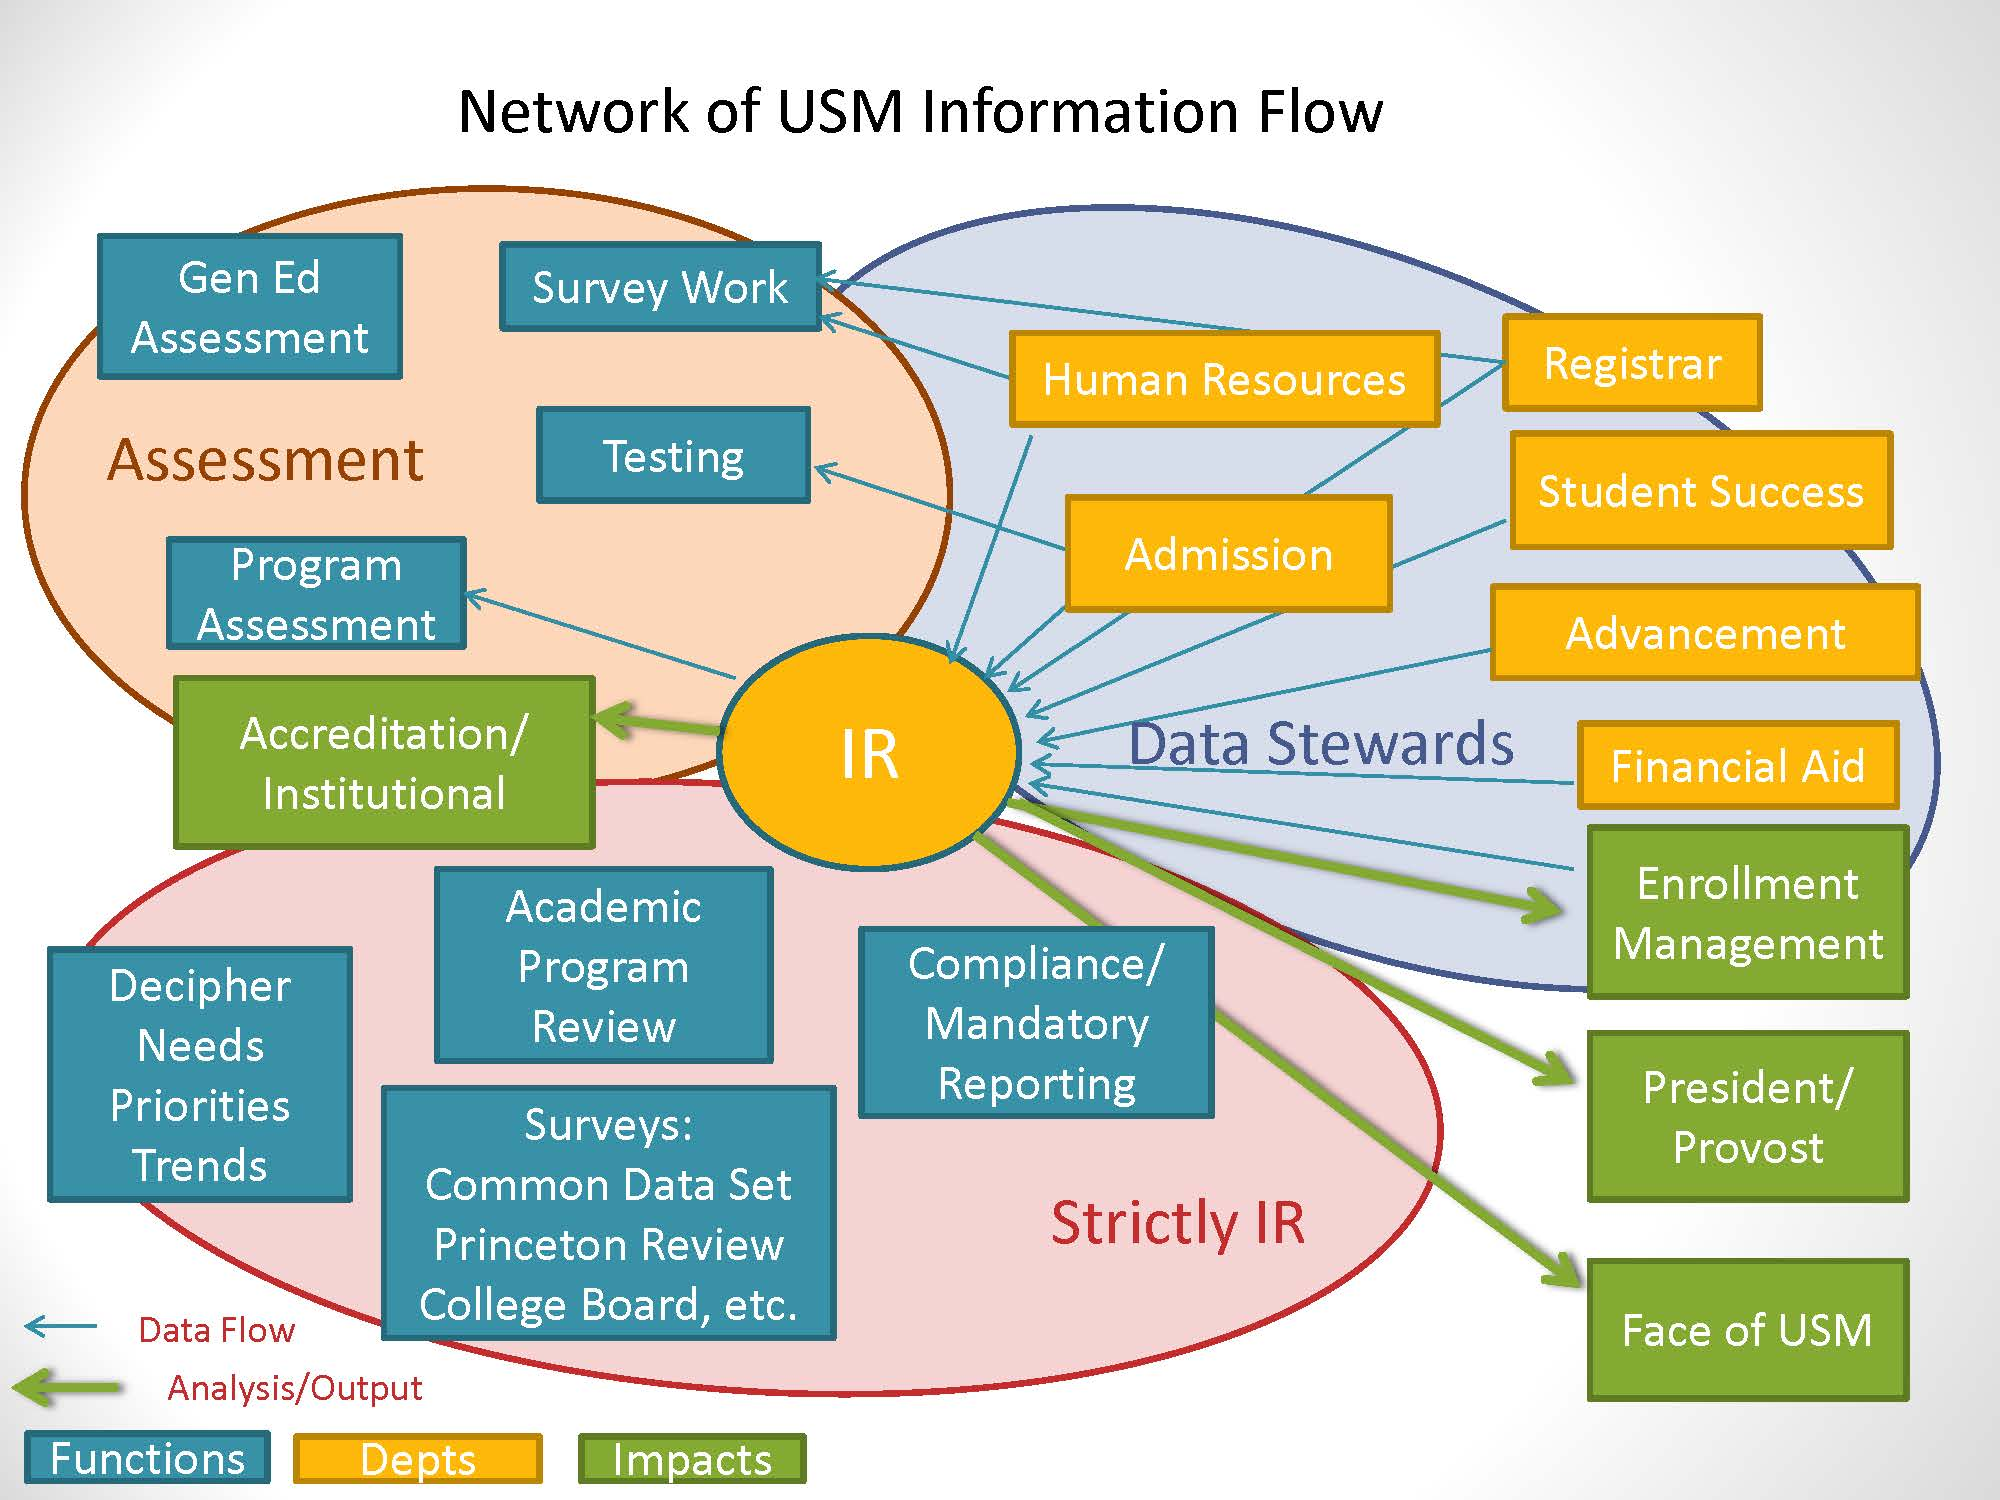 USM_Network_Flow_Of_Information